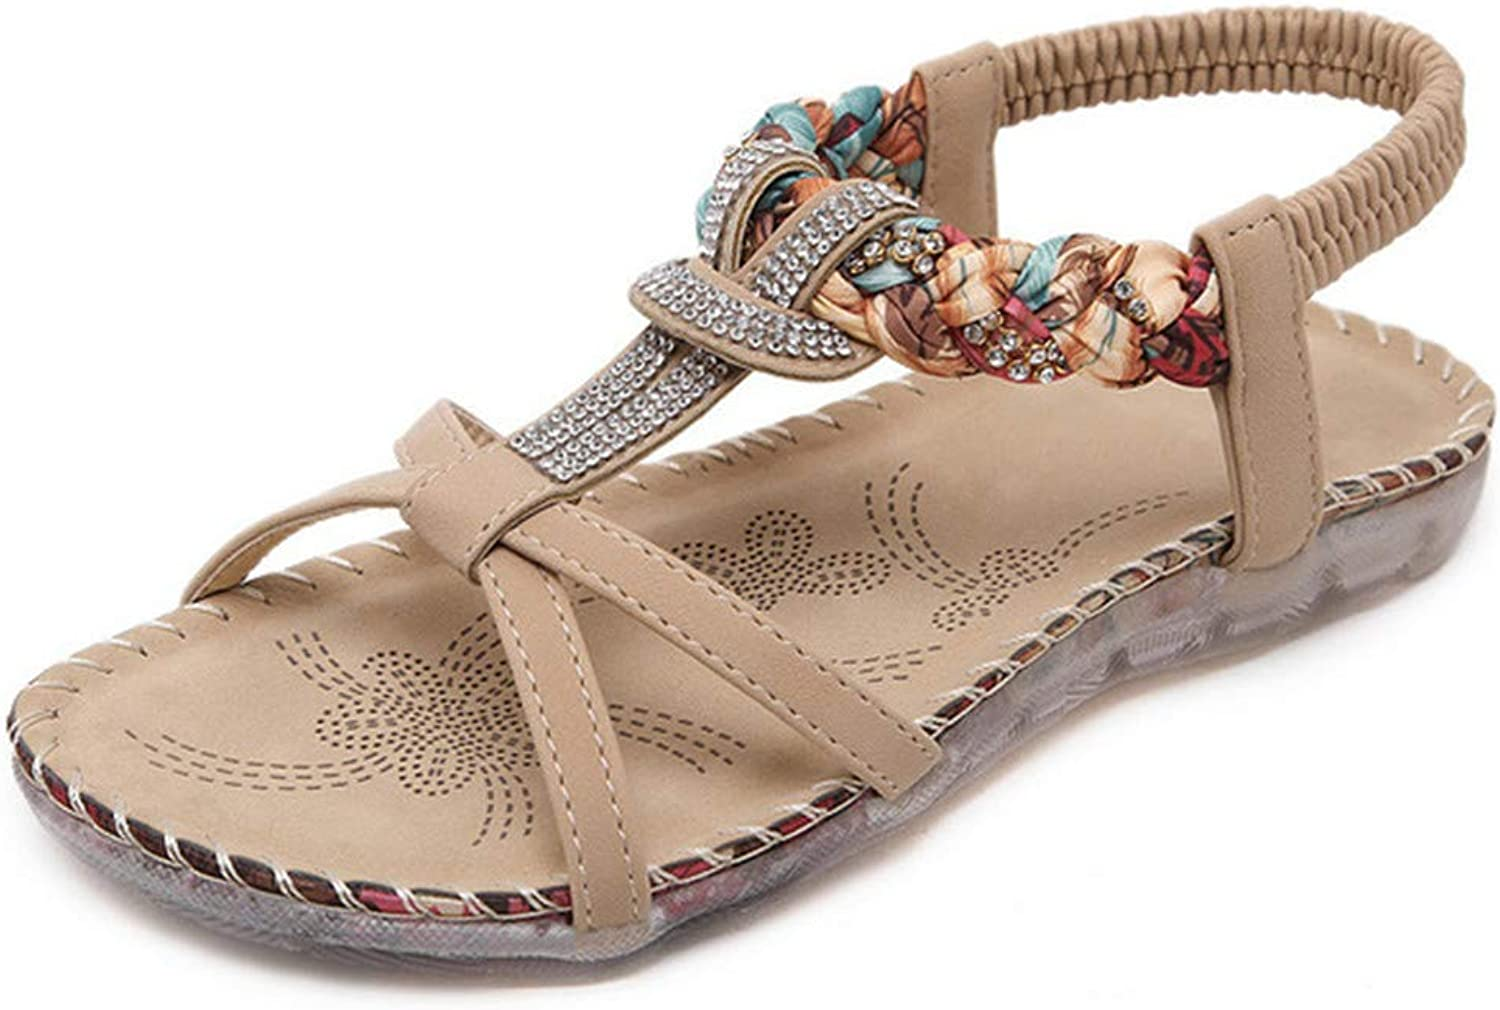 Zipong Ladies Sandals Summer Woman shoes Bohemian Women Sandals Fashion